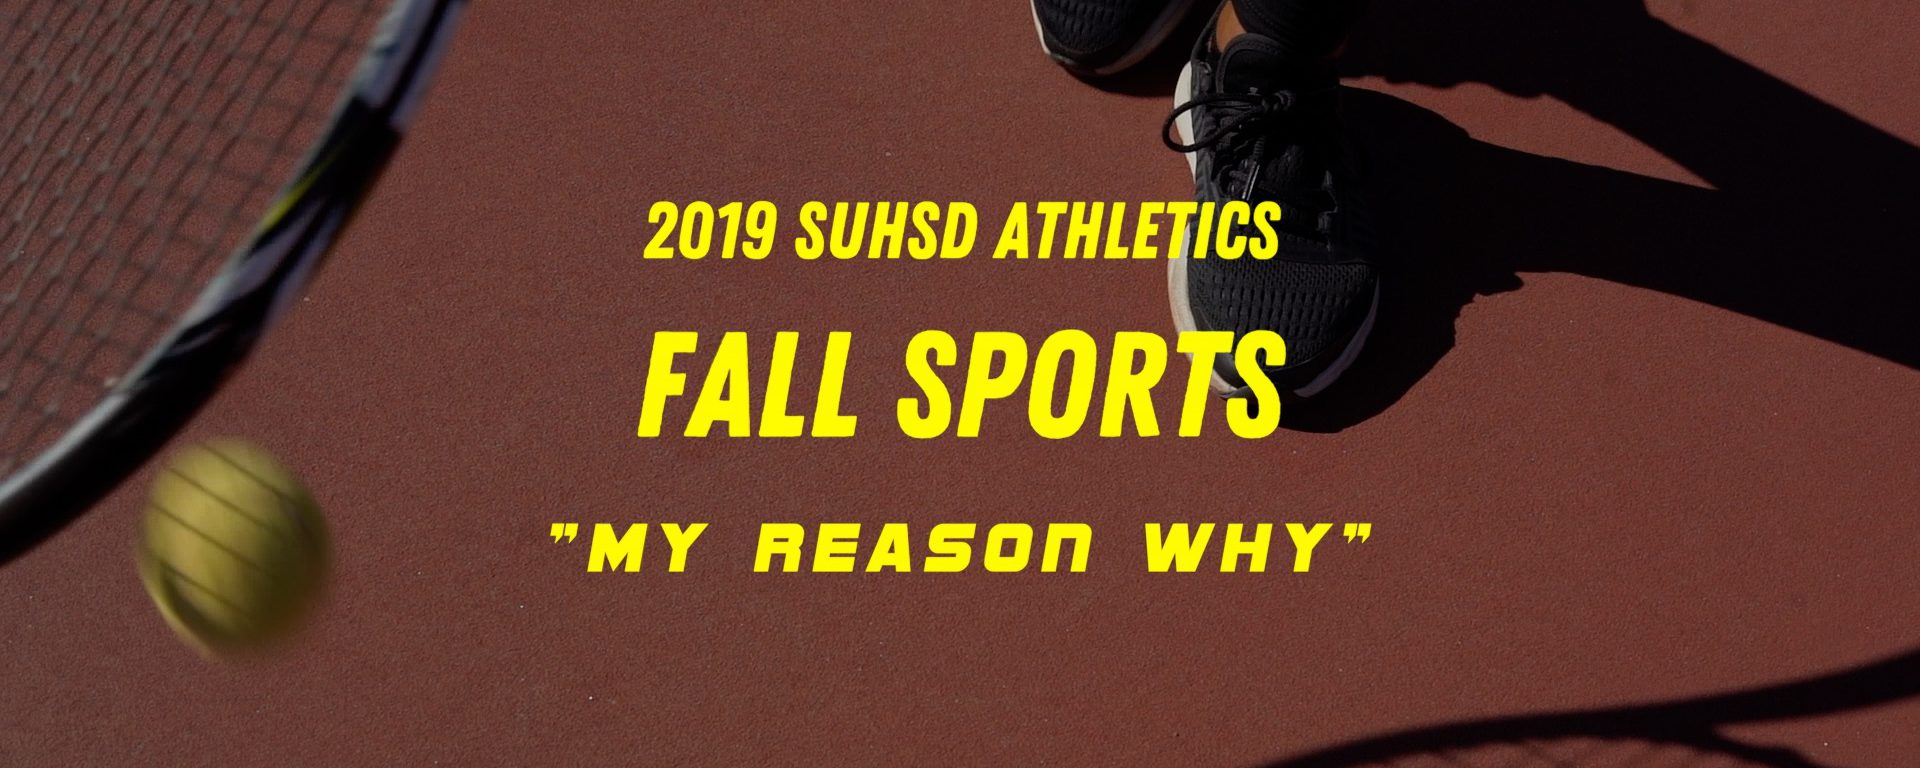 SUHSD Athletics - Fall Sports